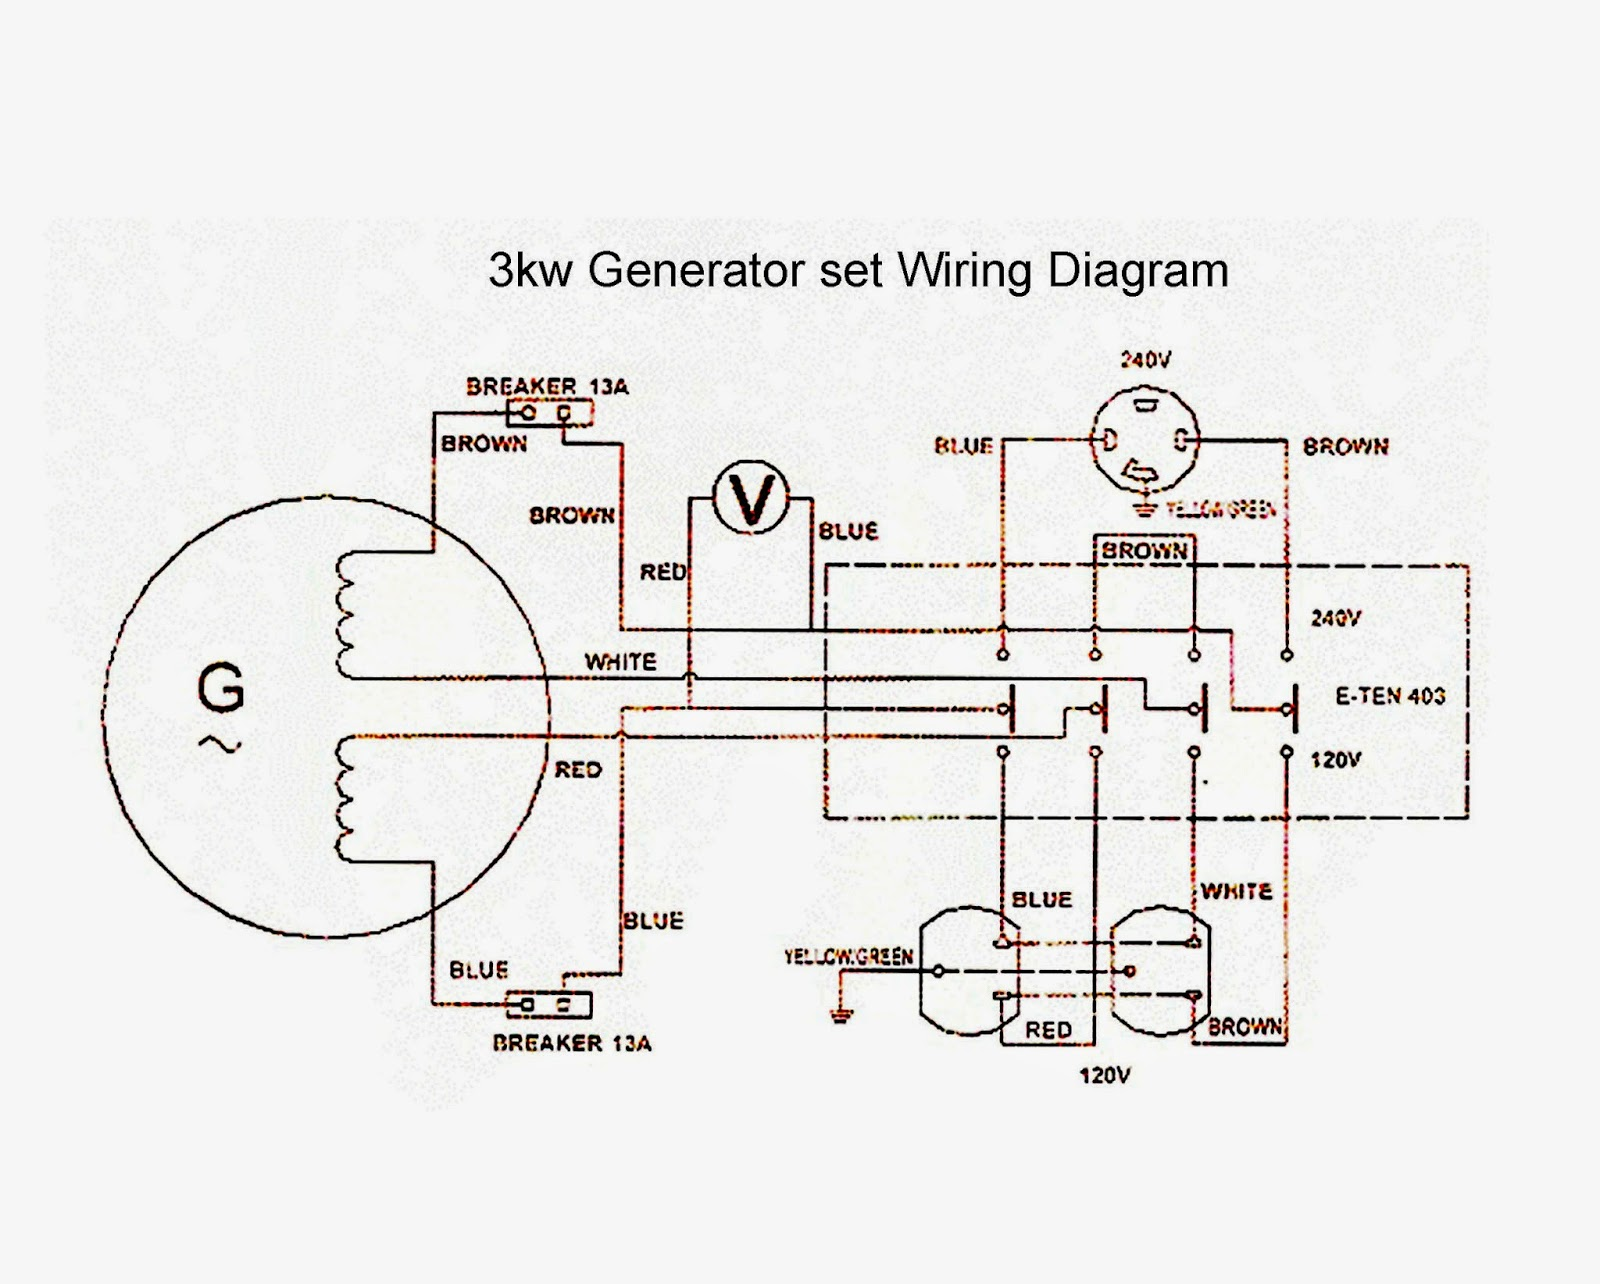 3000w+gensetswiringdiagram+1 28 [ wiring diagram of generator ] starter generator wiring electrical wire diagram software freeware at eliteediting.co